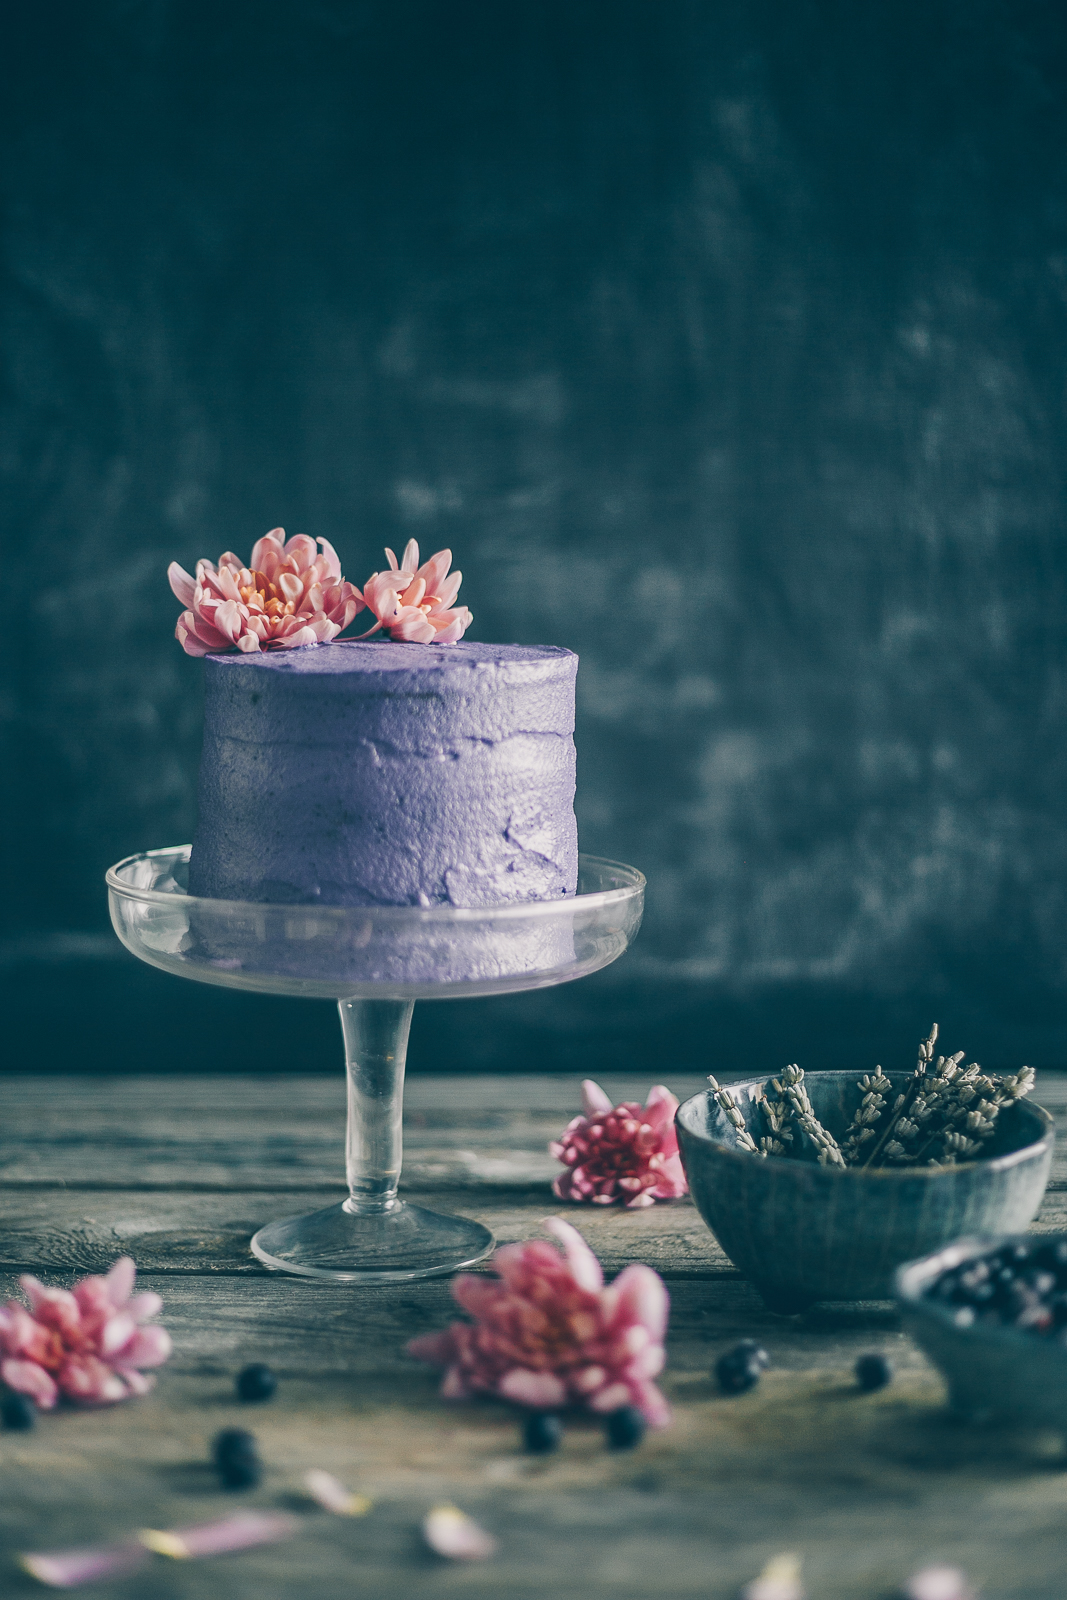 Thais FK Photographer Recipe Developer & Content Creator | Valokuvaaja Ruokataiteilija & Sisällöntuottaja Thais FK | Blueberry lavender crunchy cake (gluten free, dairy free) | Collaboration with Smeg Nordic | on Due fili d'erba | Two Blades of Grass | Photos, styling and recipe by Thais FK